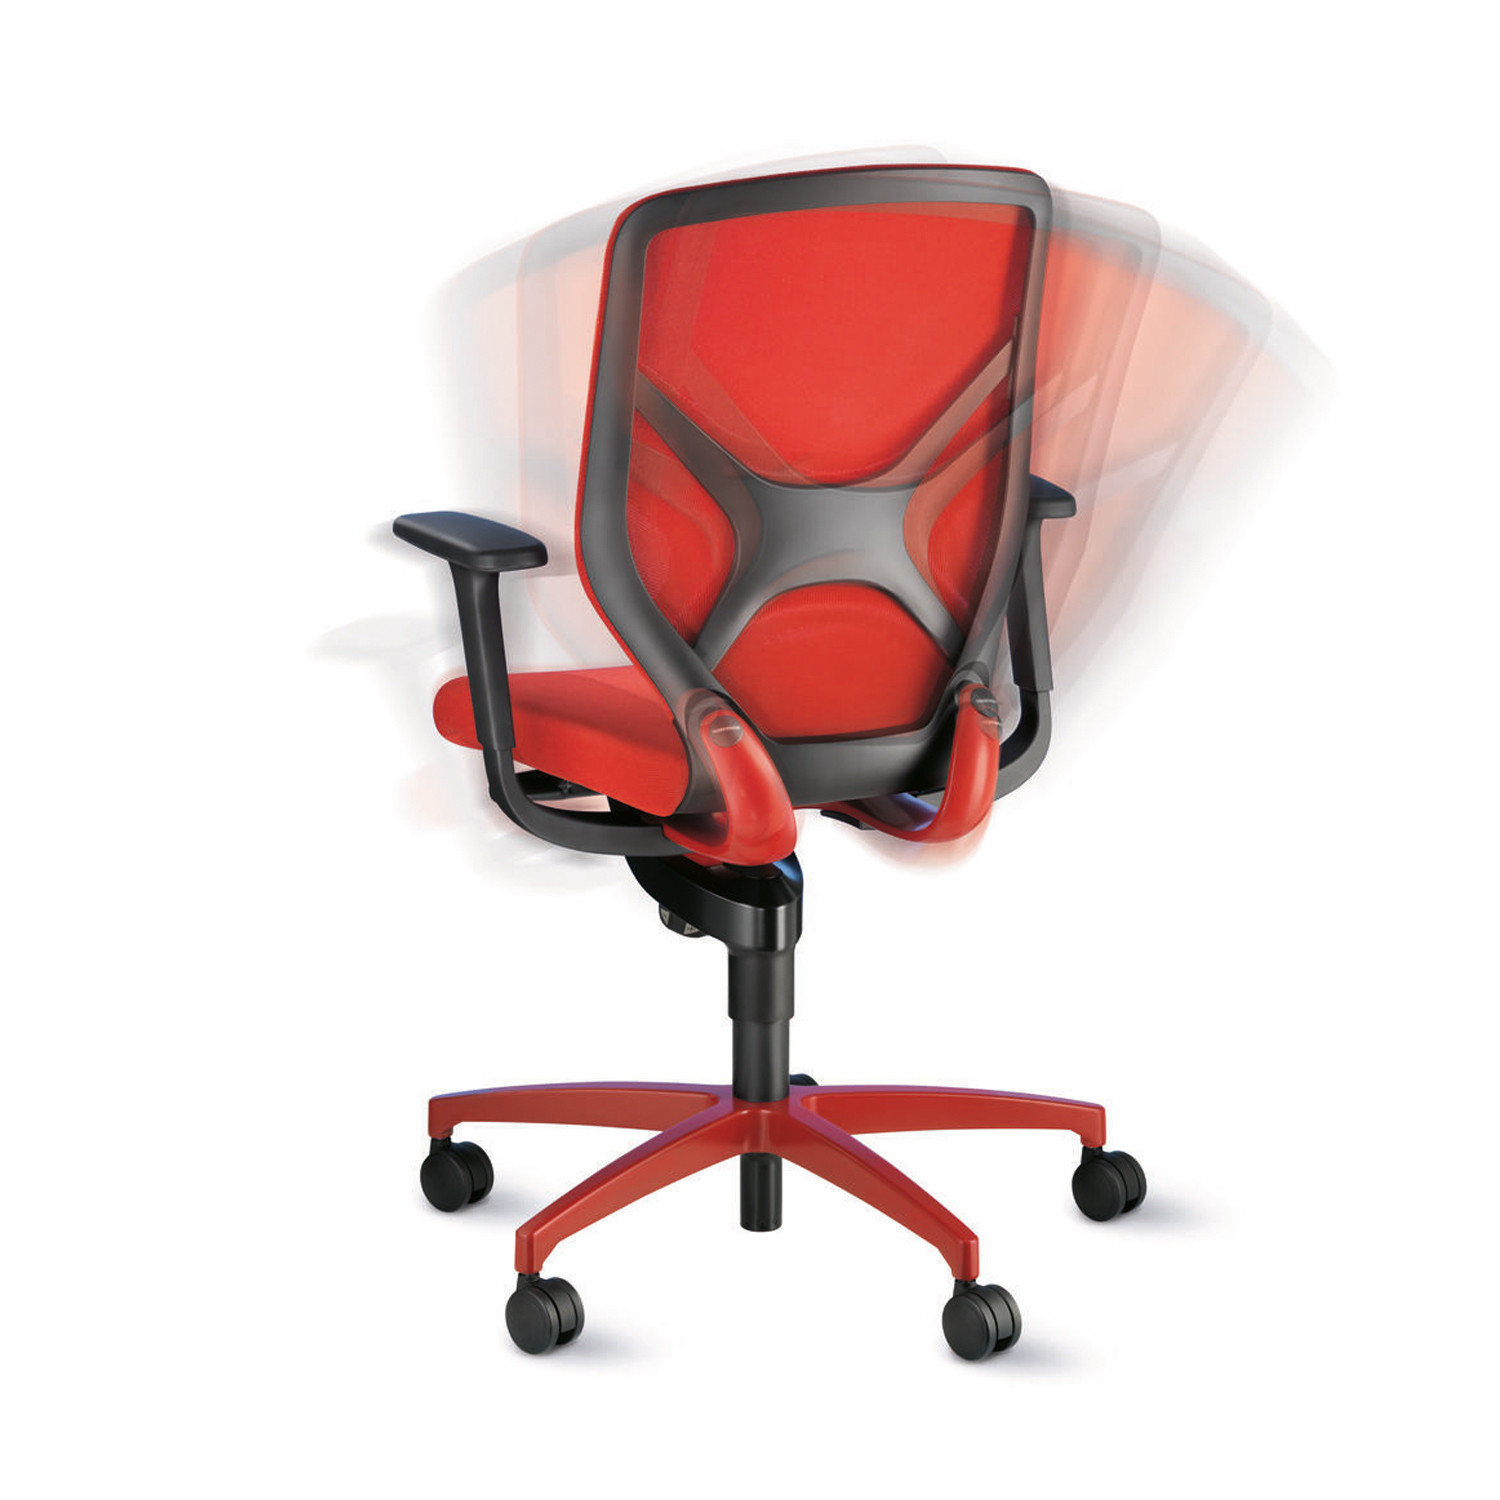 Wilkhahn Ergonomic In Office Chair